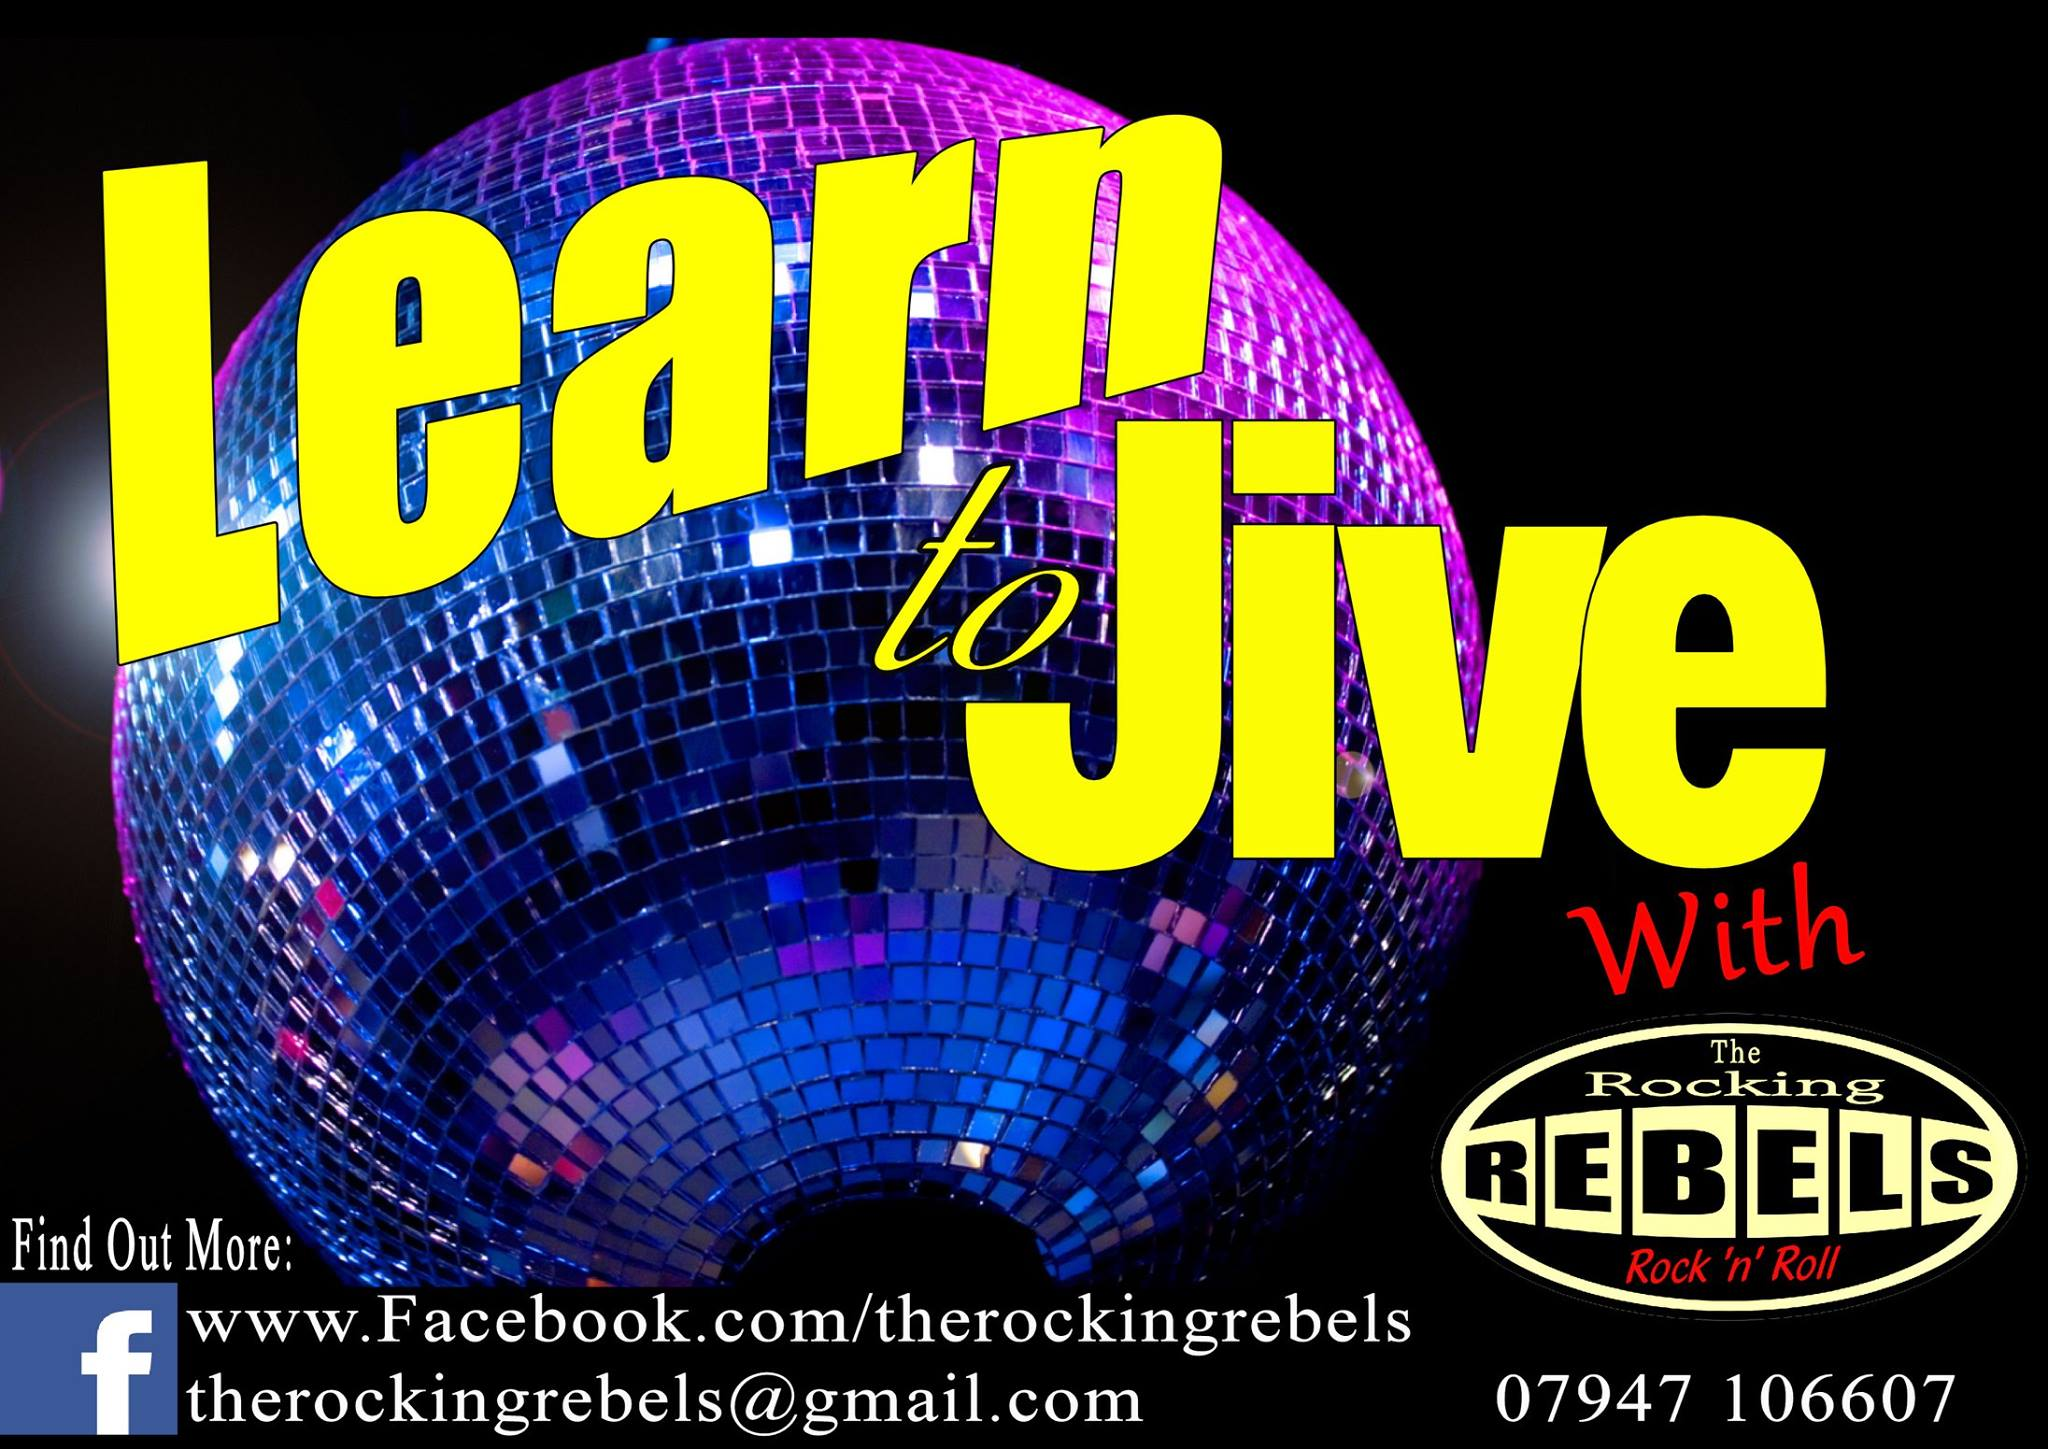 Learn to Jive Dance